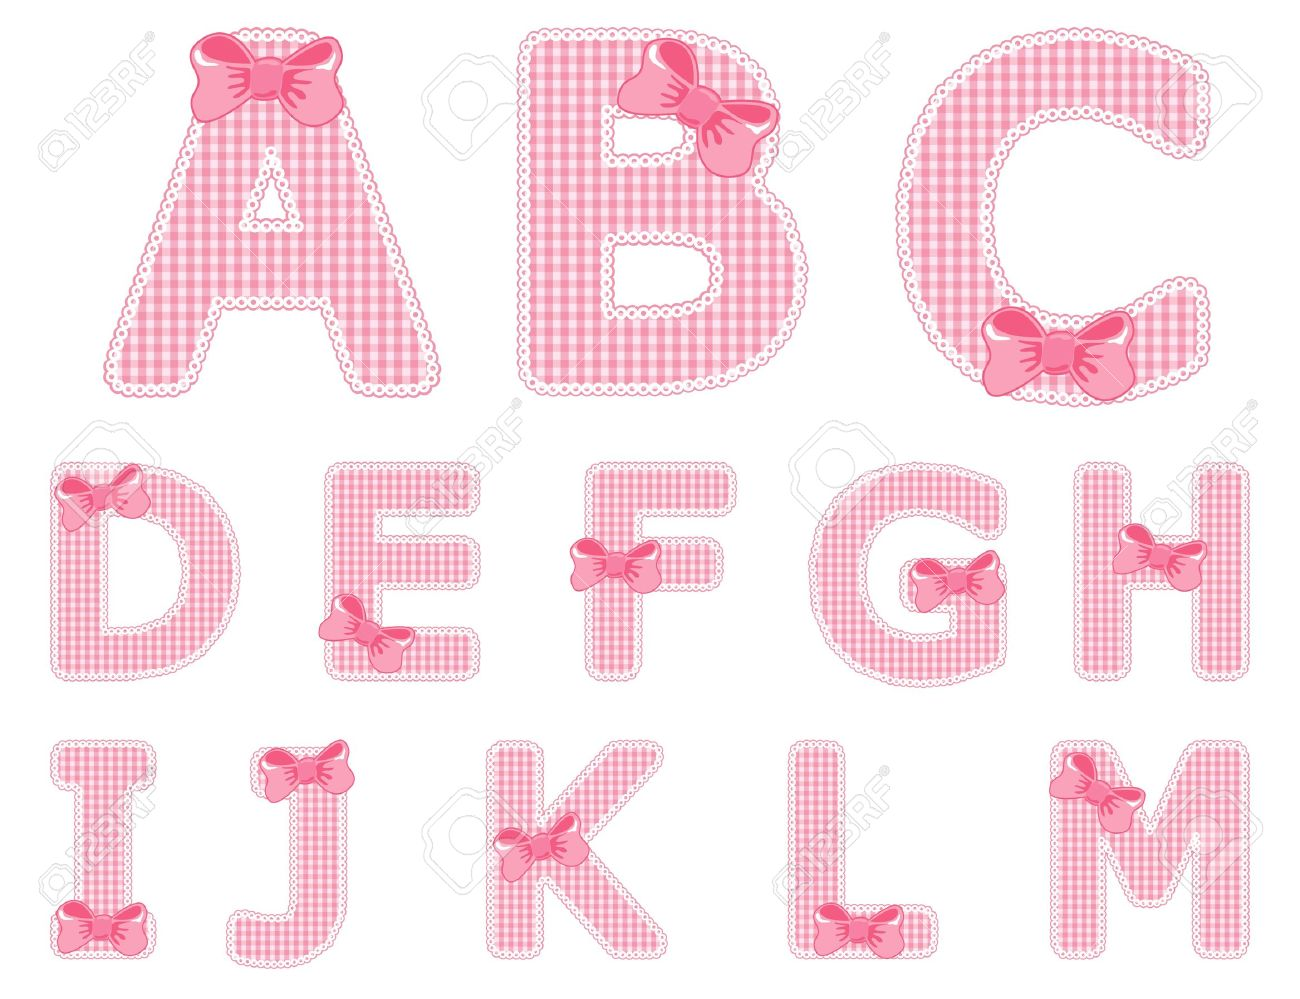 Baby girl alphabet clipart clip black and white Baby girl alphabet clipart - ClipartFest clip black and white